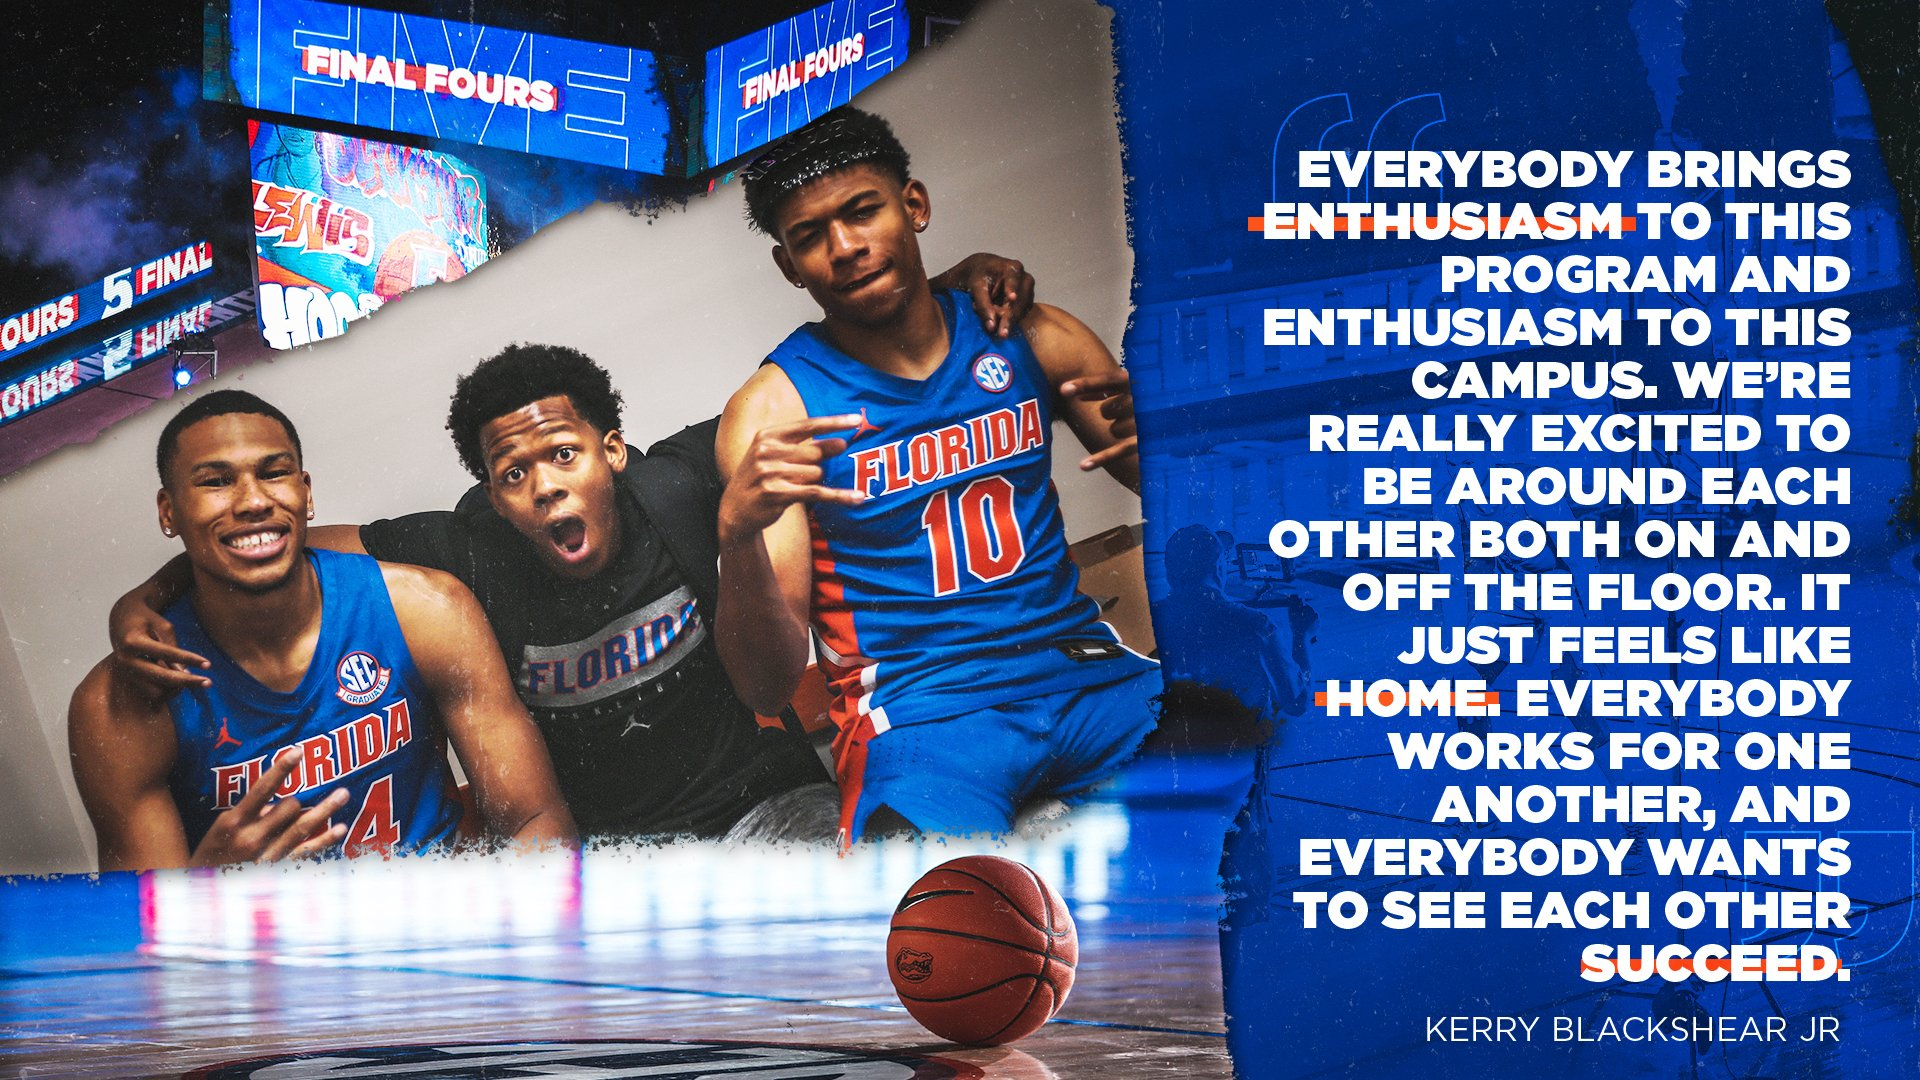 Florida Gators Men's Basketball: '...just feels like home...' @kjblack15   #GatorsHoop.  Tweet by @GatorsMBK